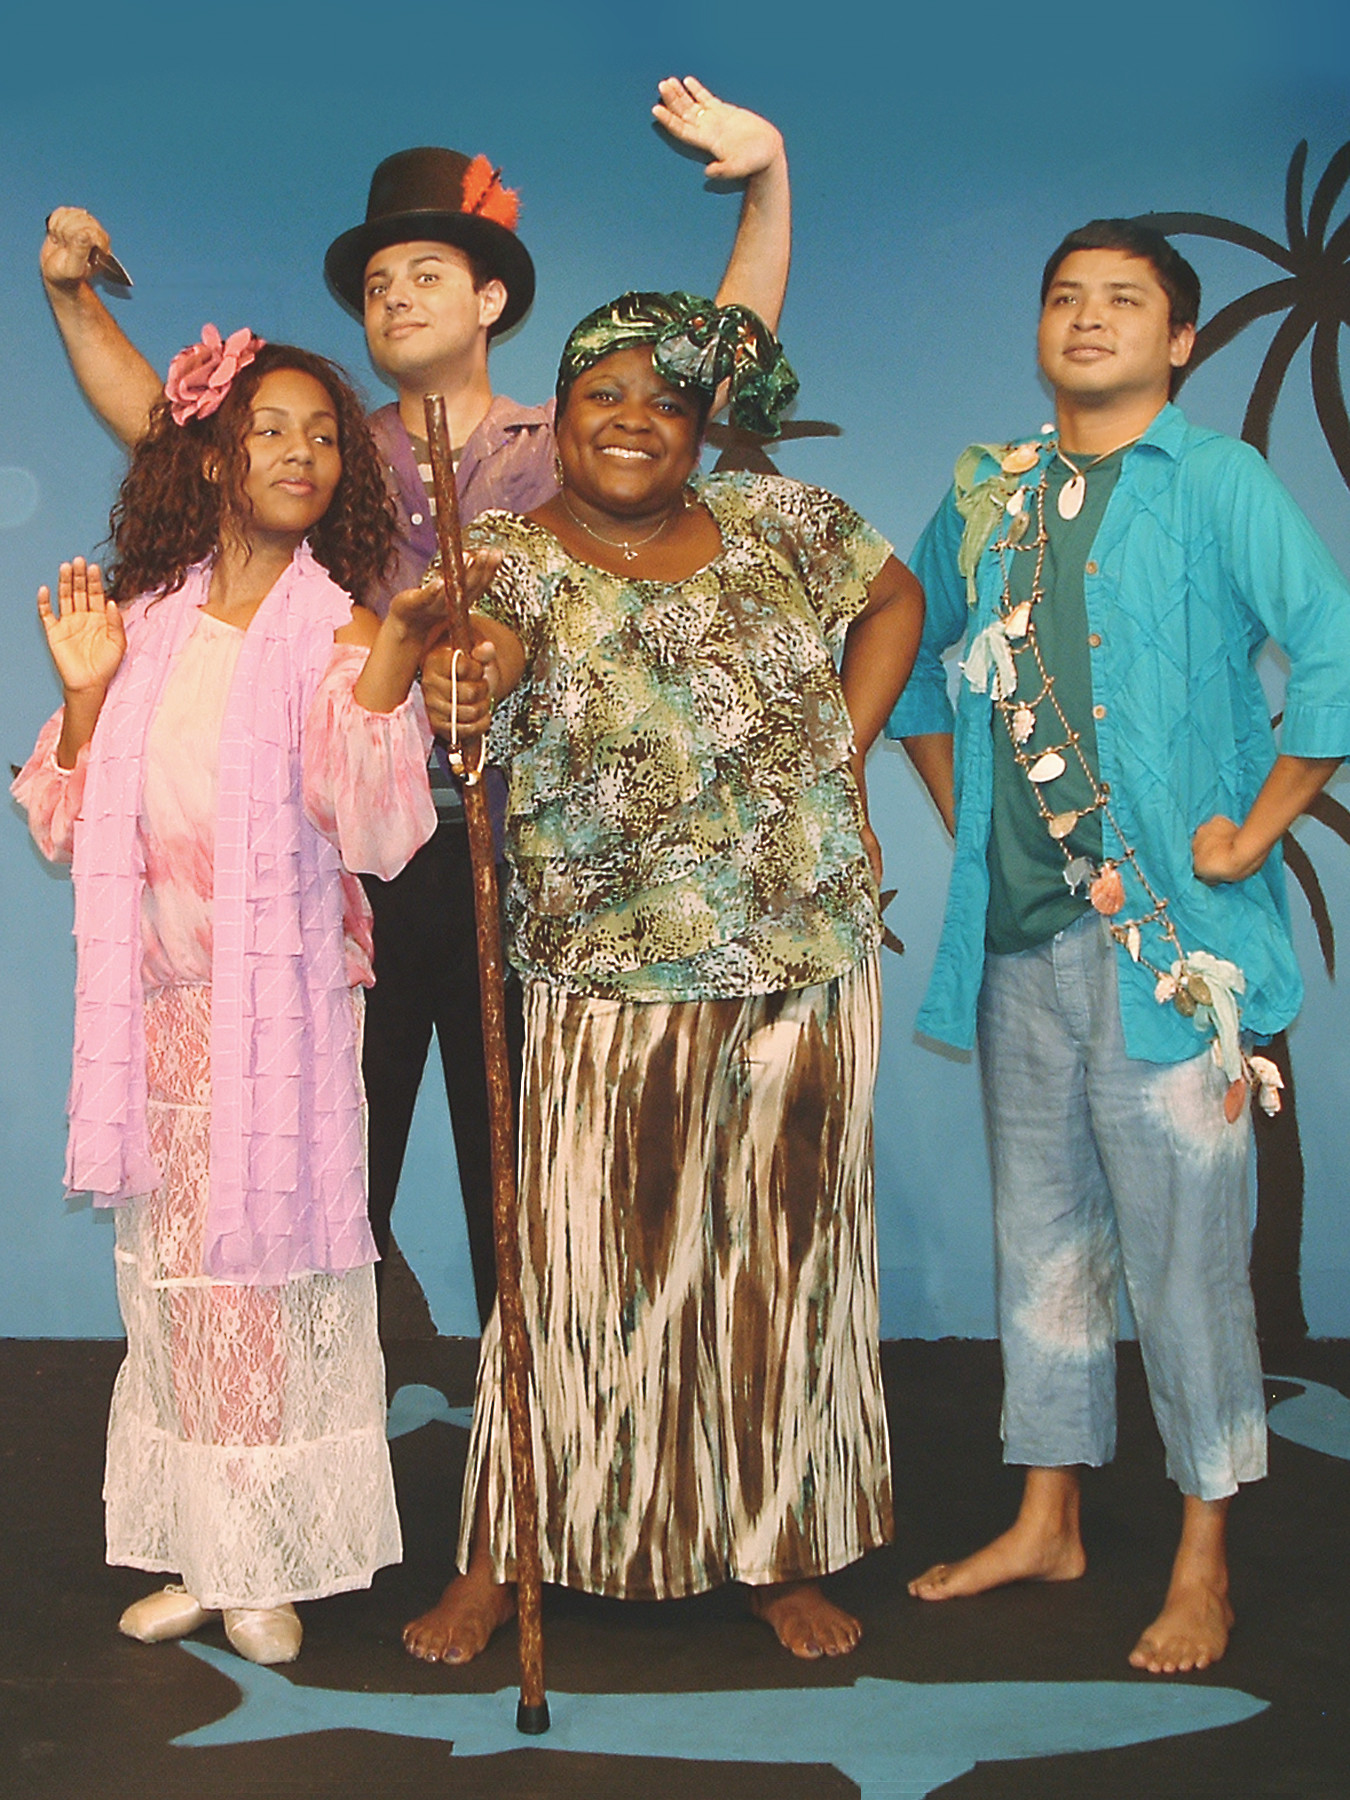 Atlantic Beach Experimental Theatre stages the family musical �Once on This Island� March 21-24 and 28-30 at Adele Grage Cultural Center in Atlantic Beach.